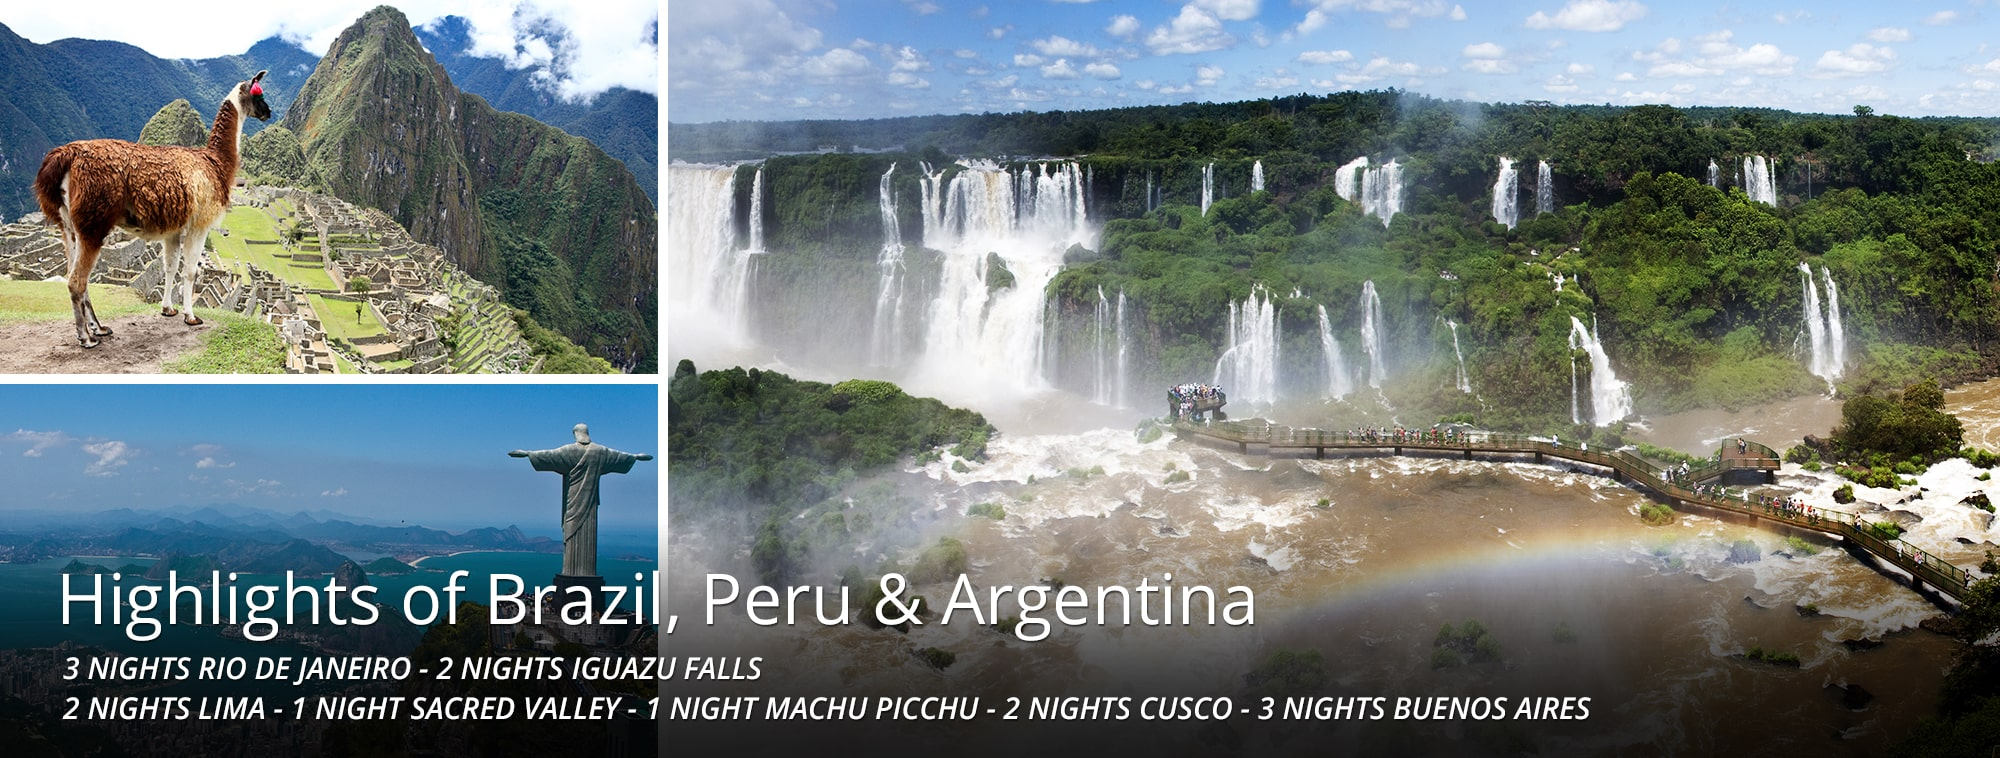 Highlights of Brazil, Peru & Argentina Tour Banner